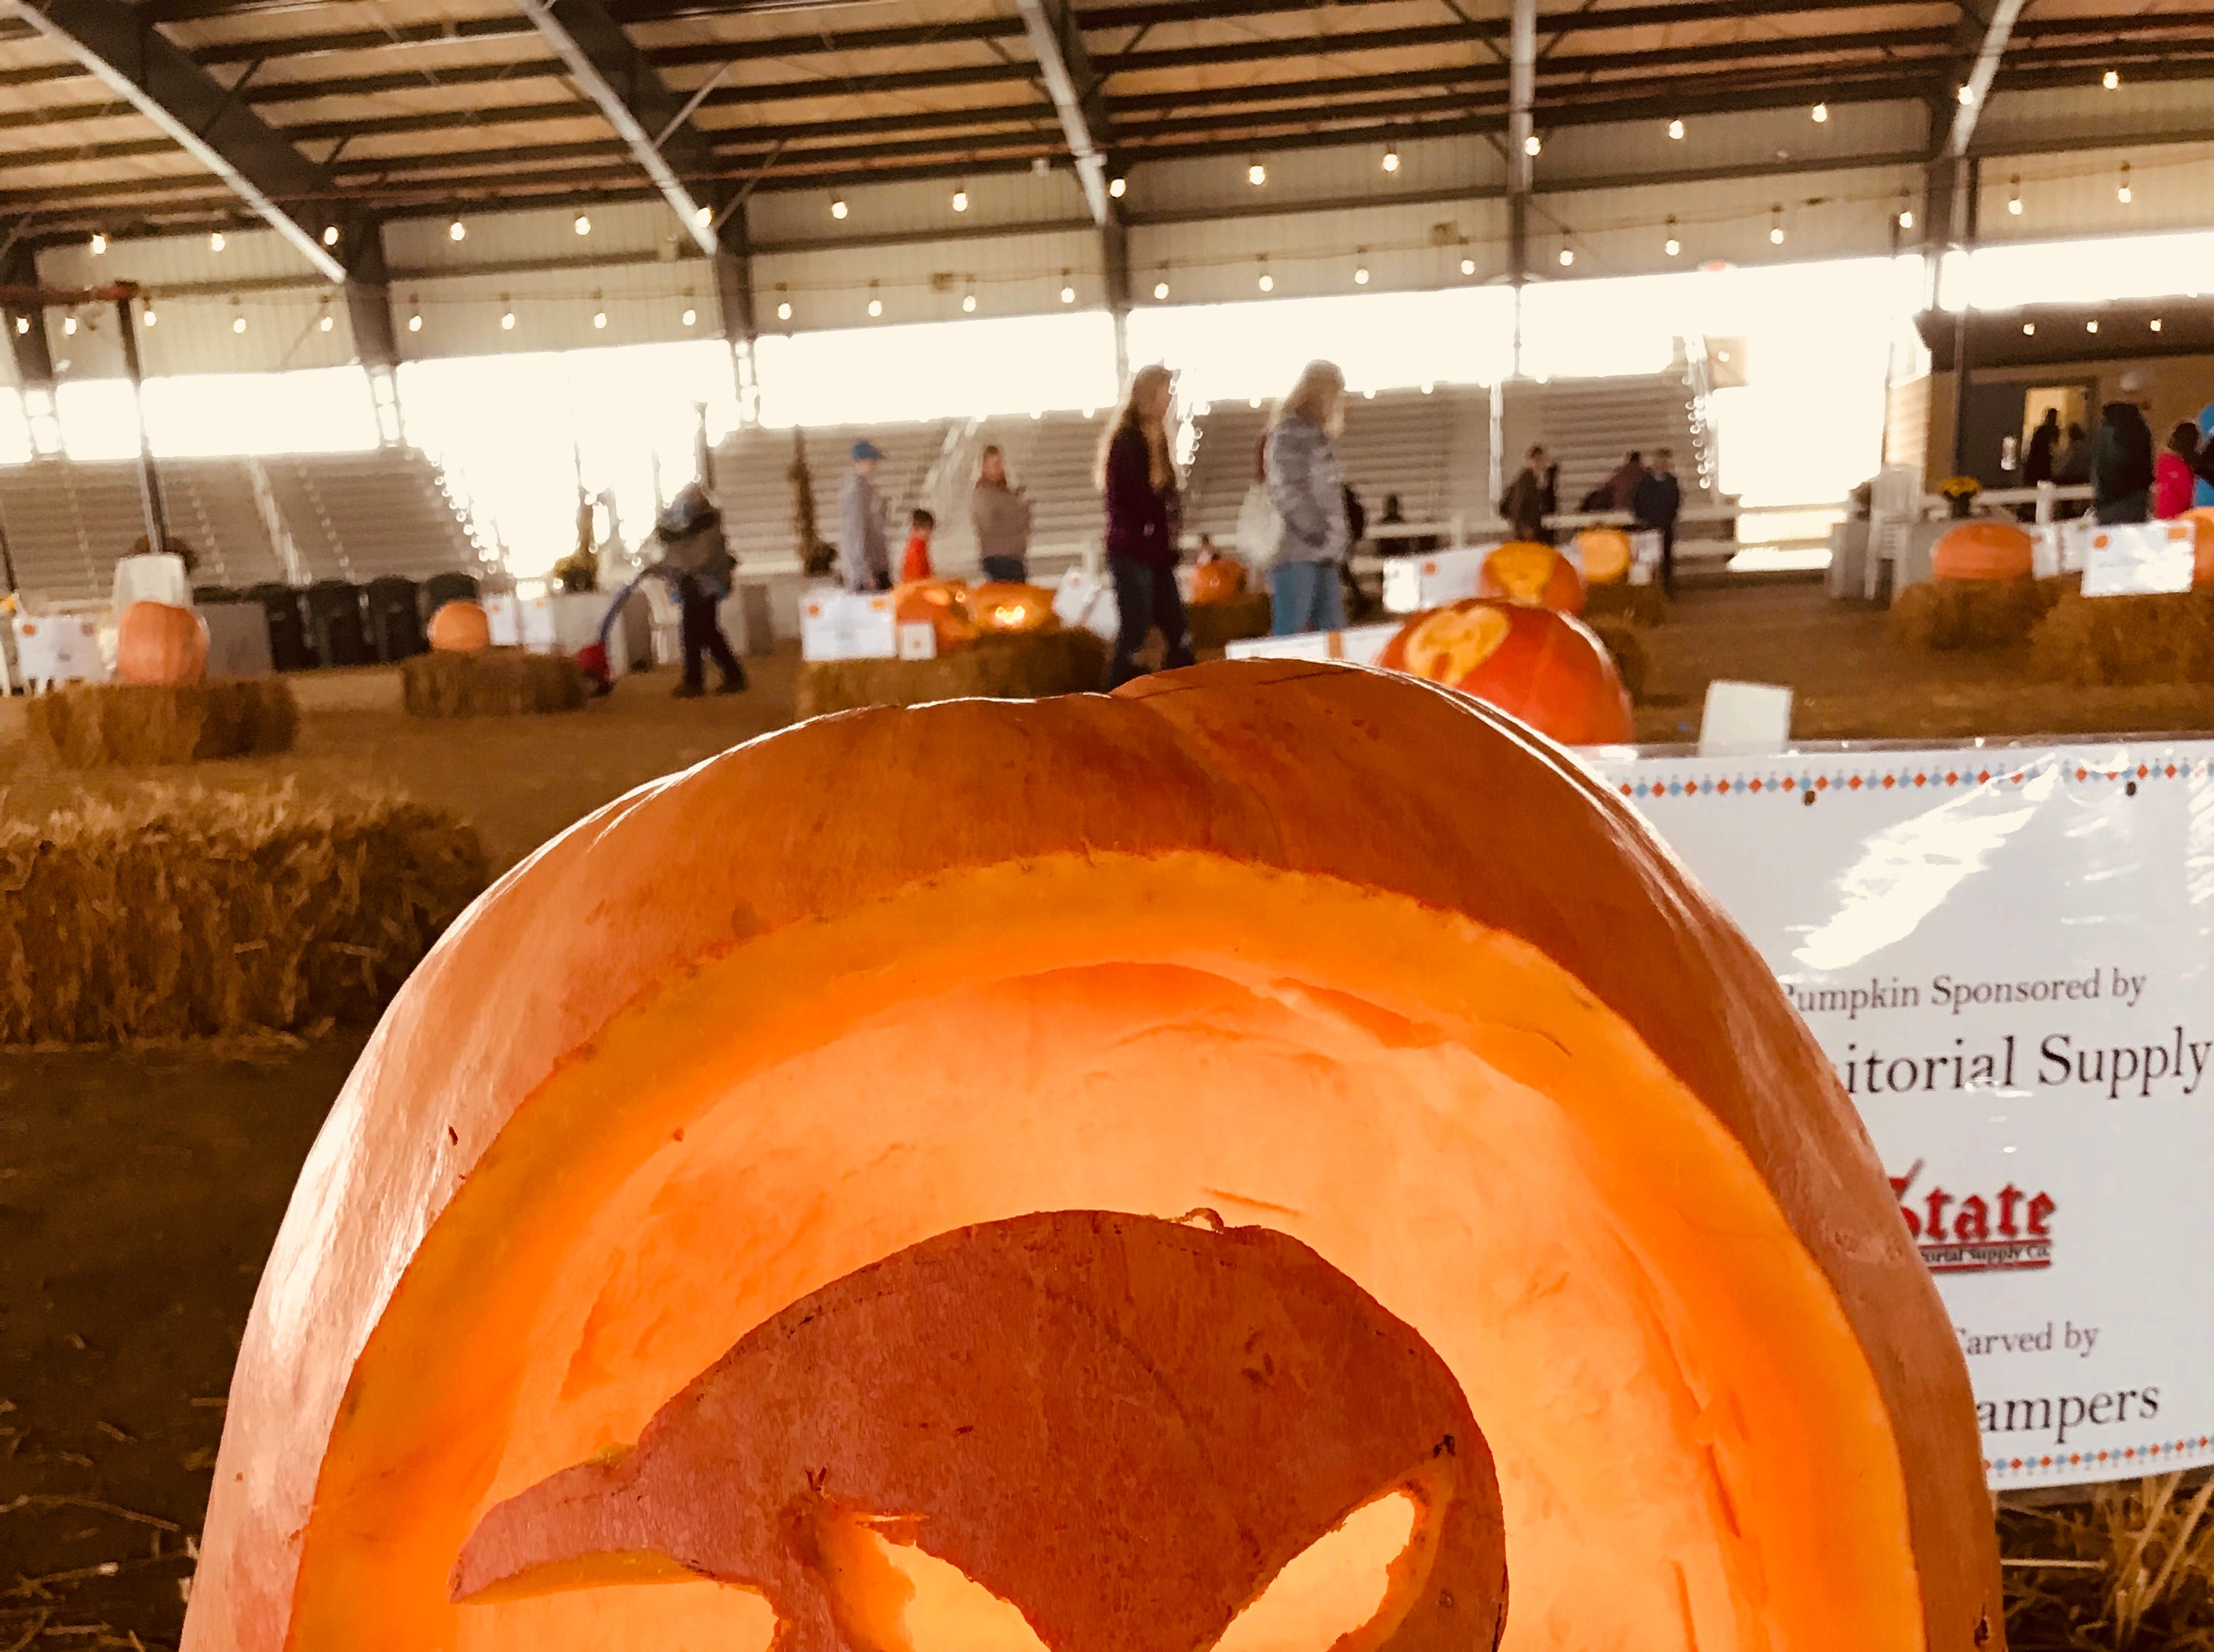 Another offering at the first Great Delaware Pumpkin Carve.